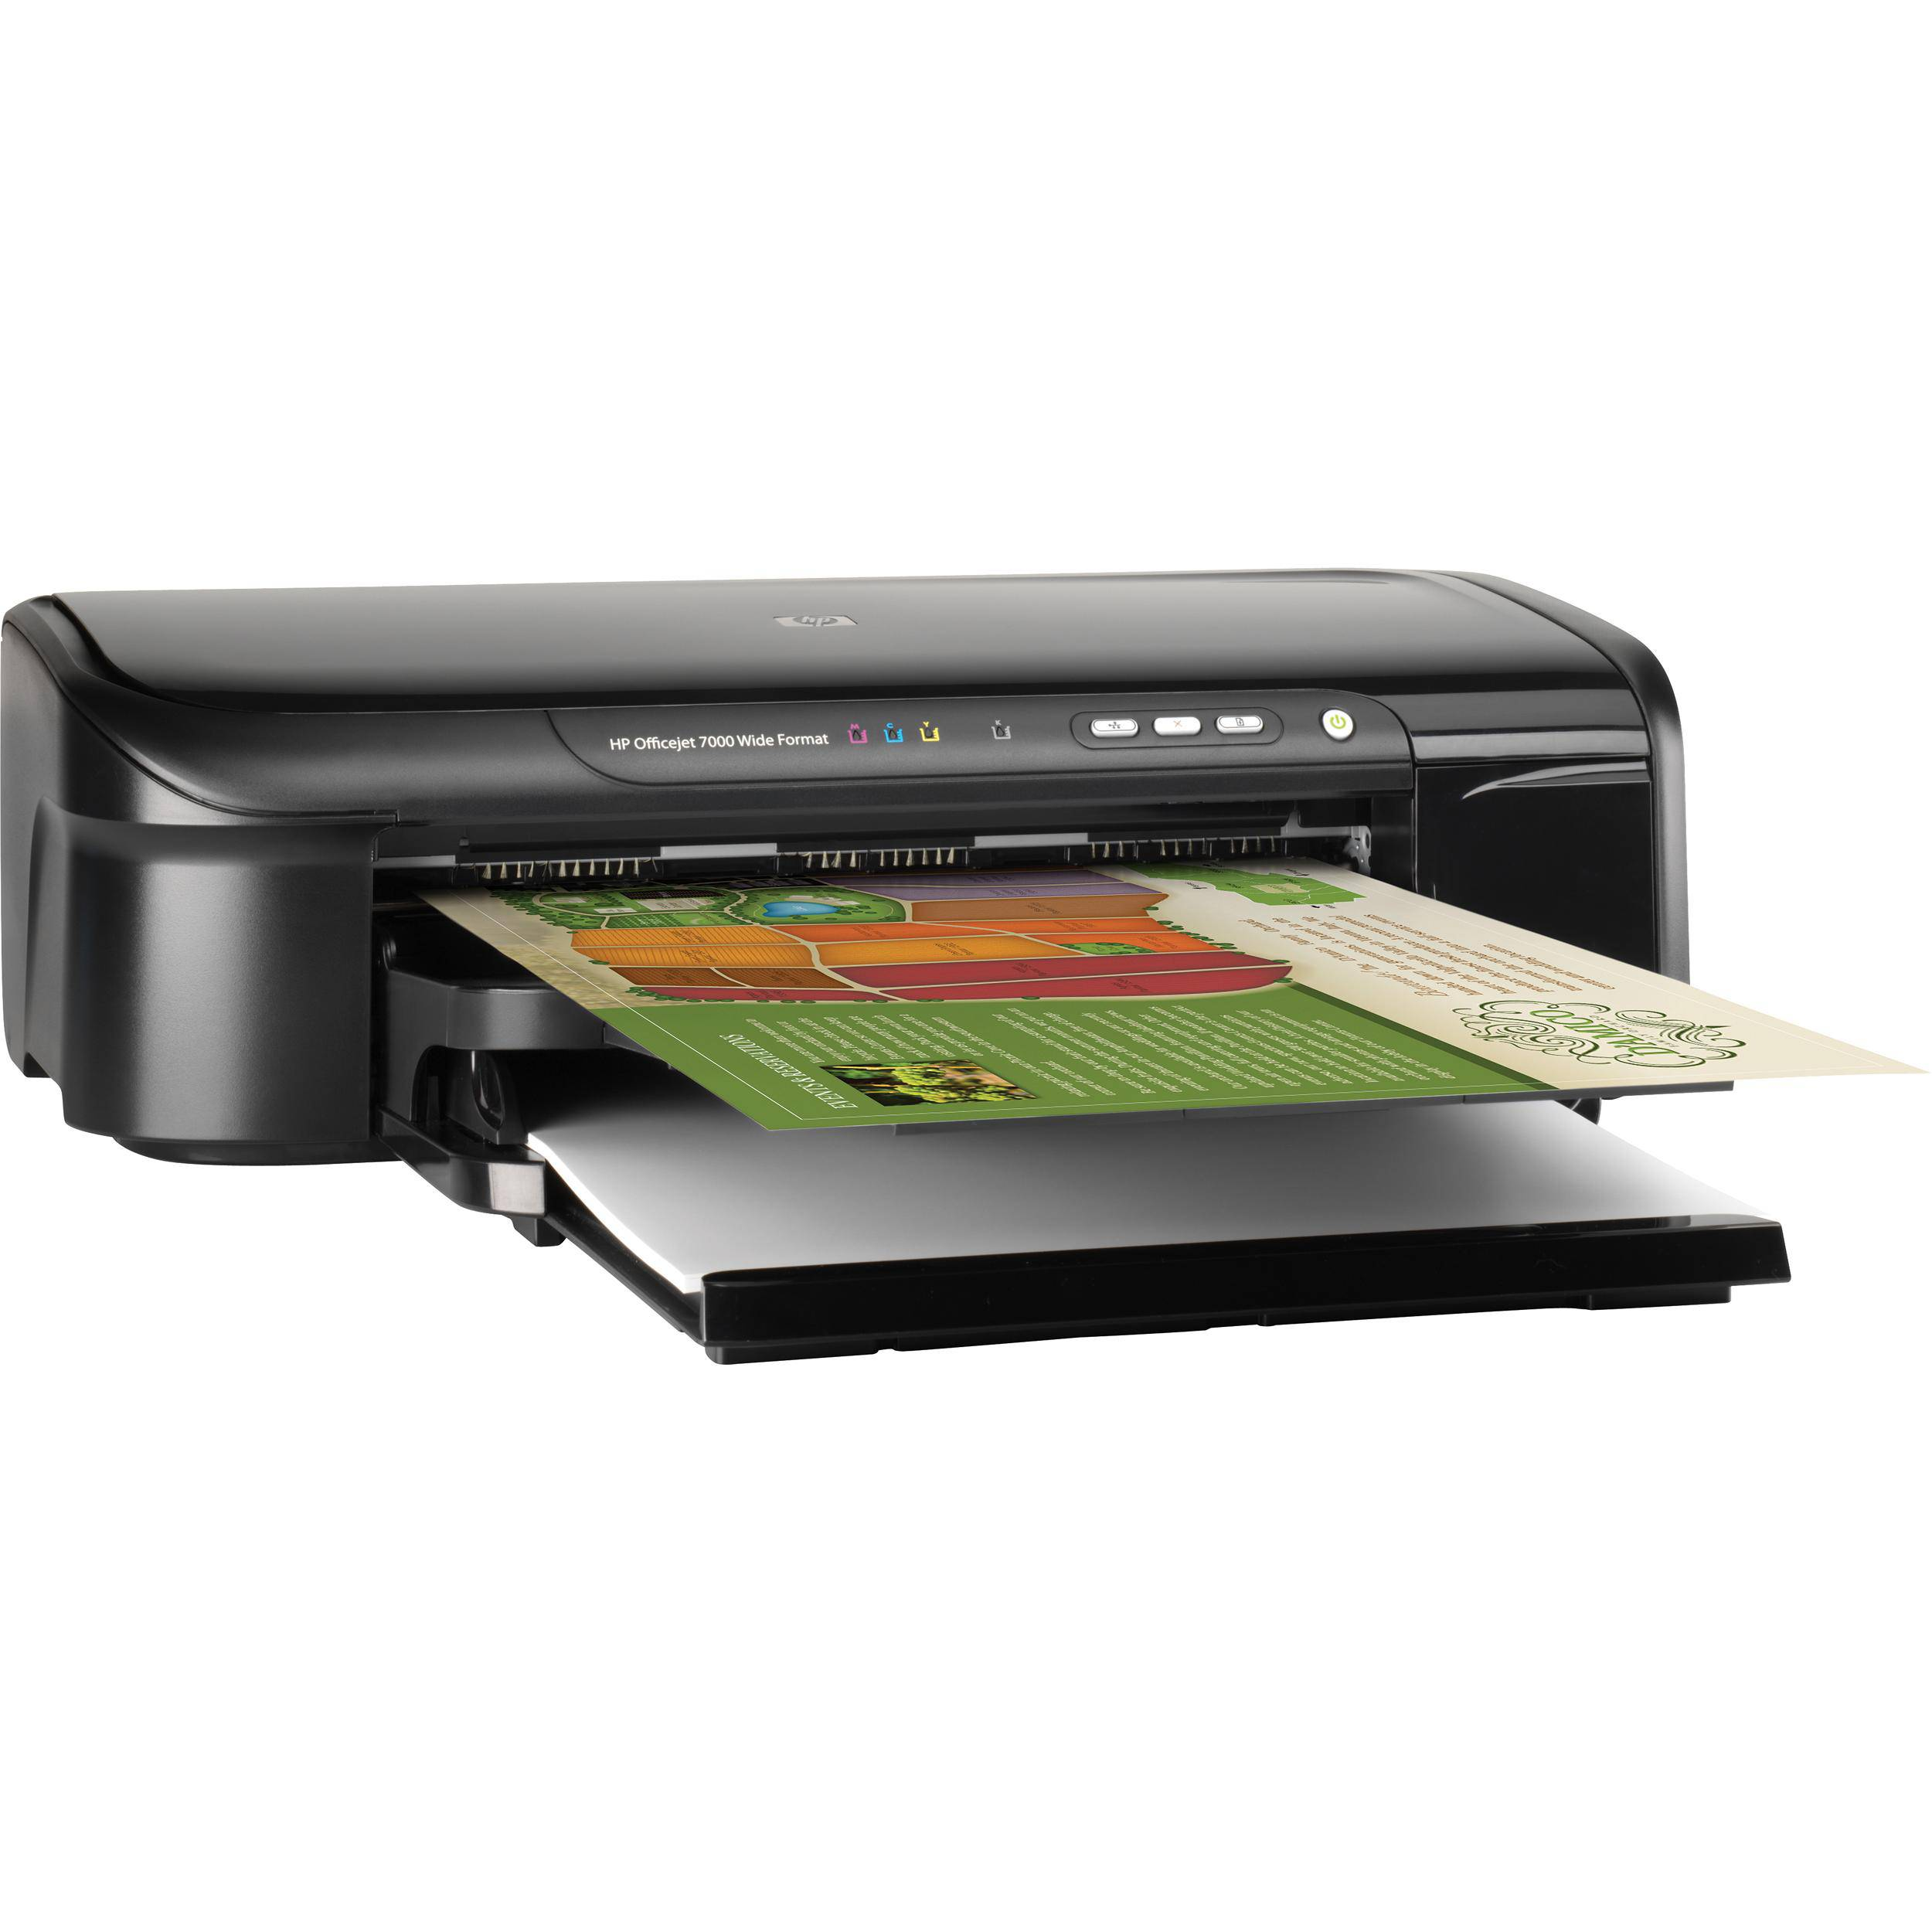 pilote hp officejet 7000 wide format gratuit